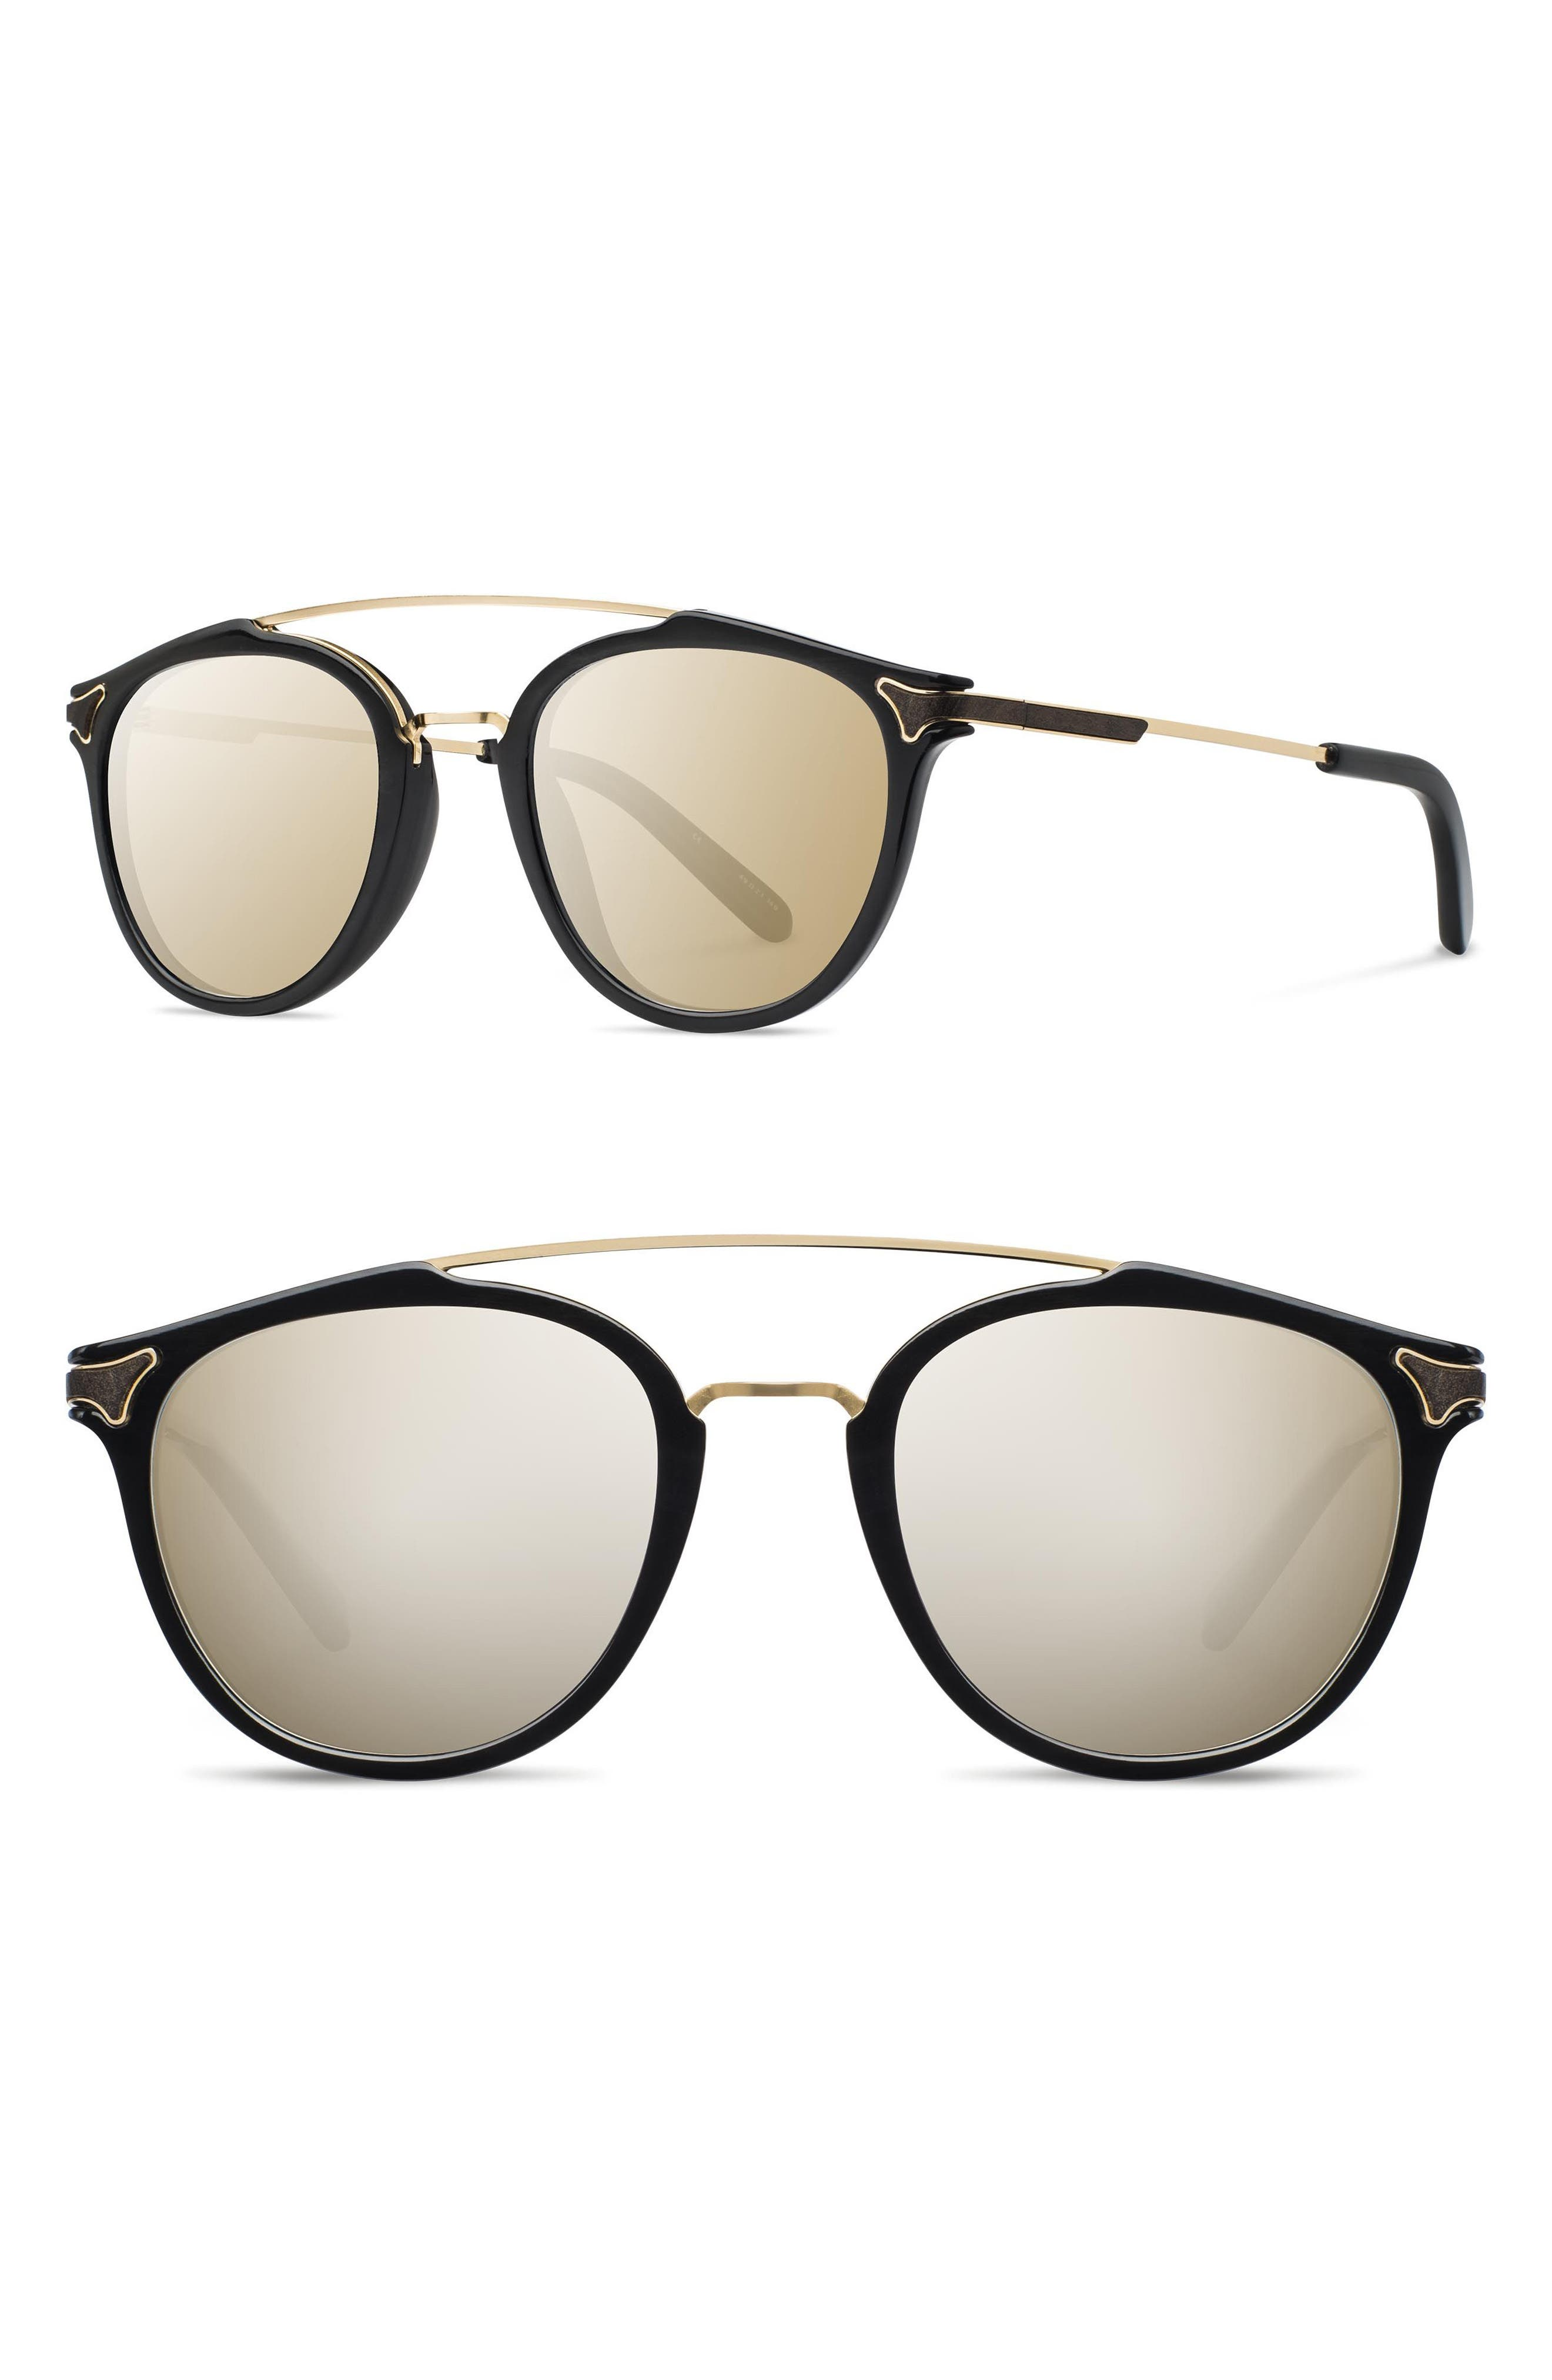 Kinsrow 49mm Acetate & Wood Sunglasses,                             Main thumbnail 1, color,                             Black/ Gold Mirror